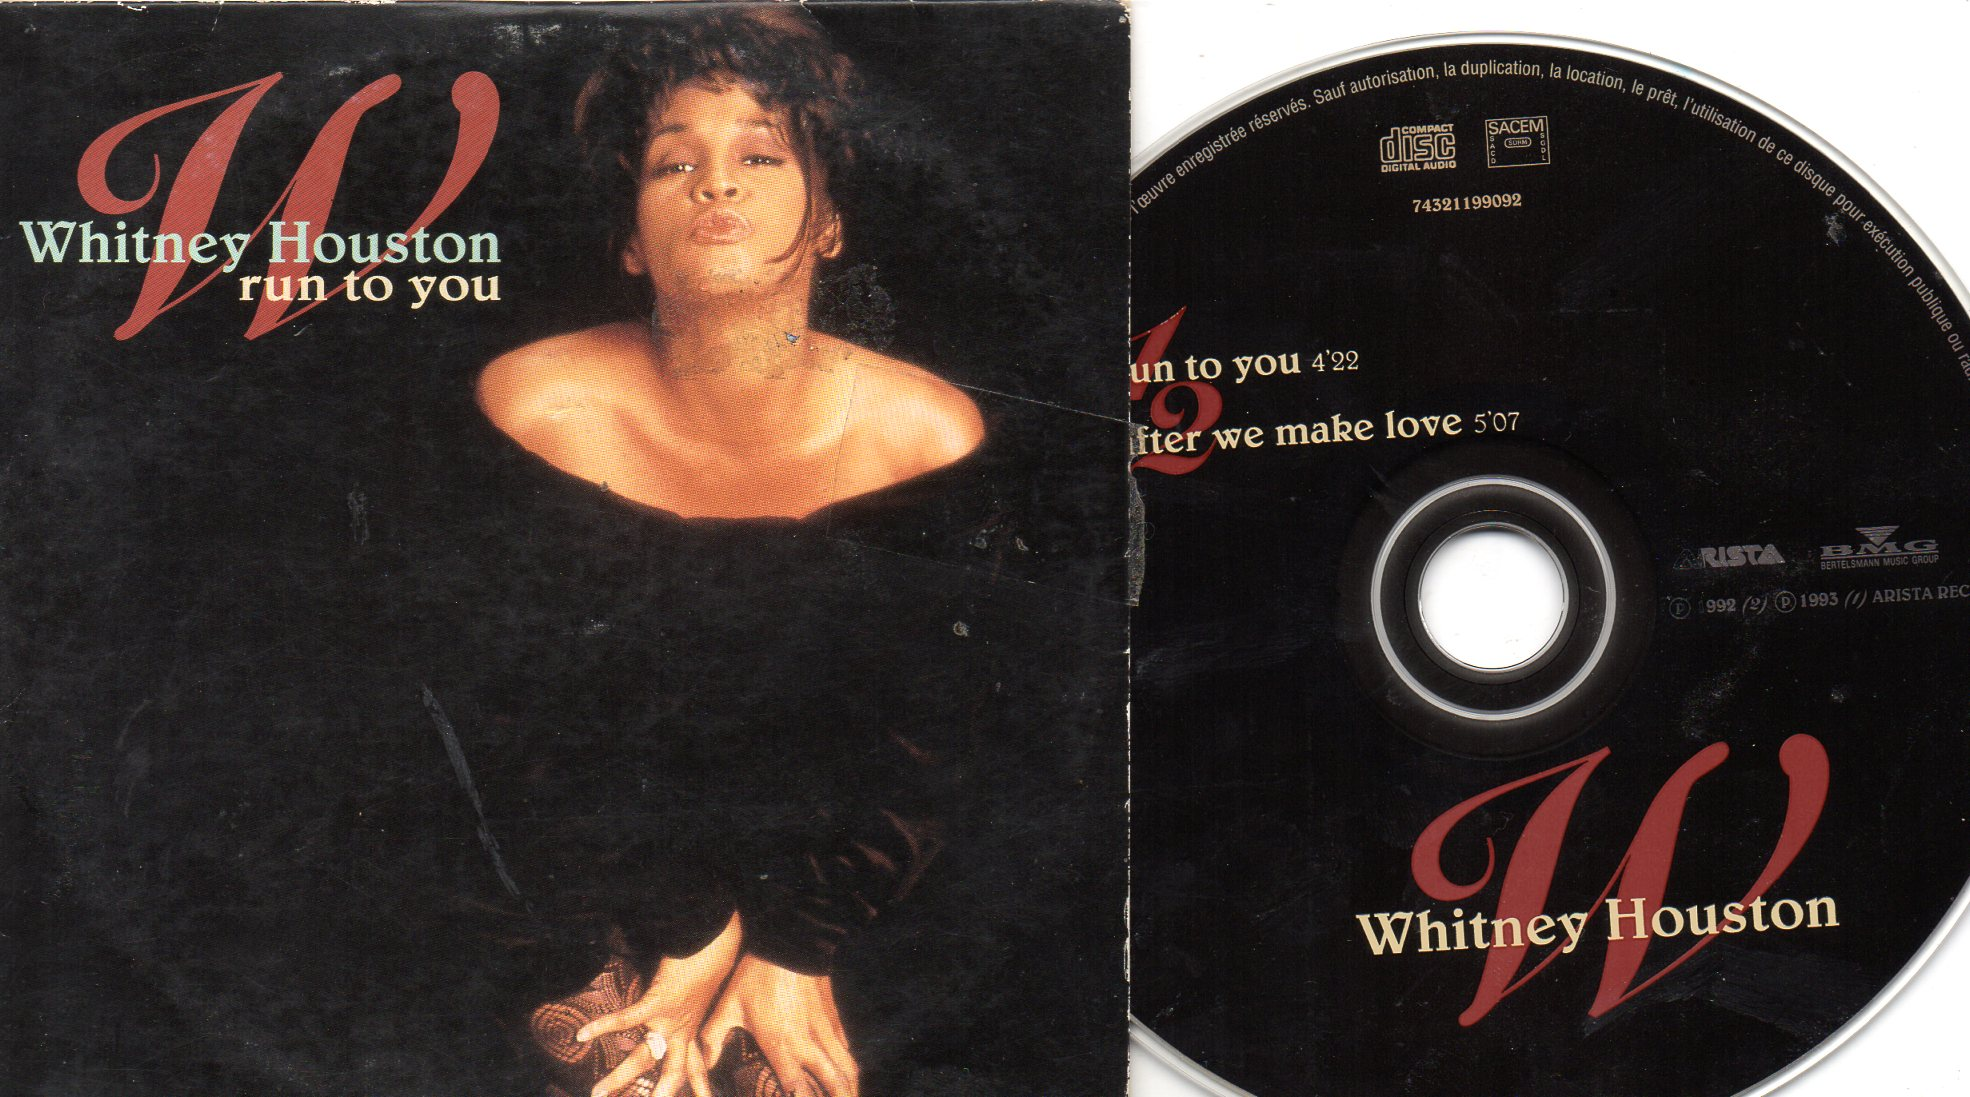 WHITNEY HOUSTON - Run to you 2-track CARD SLEEVE - CD single